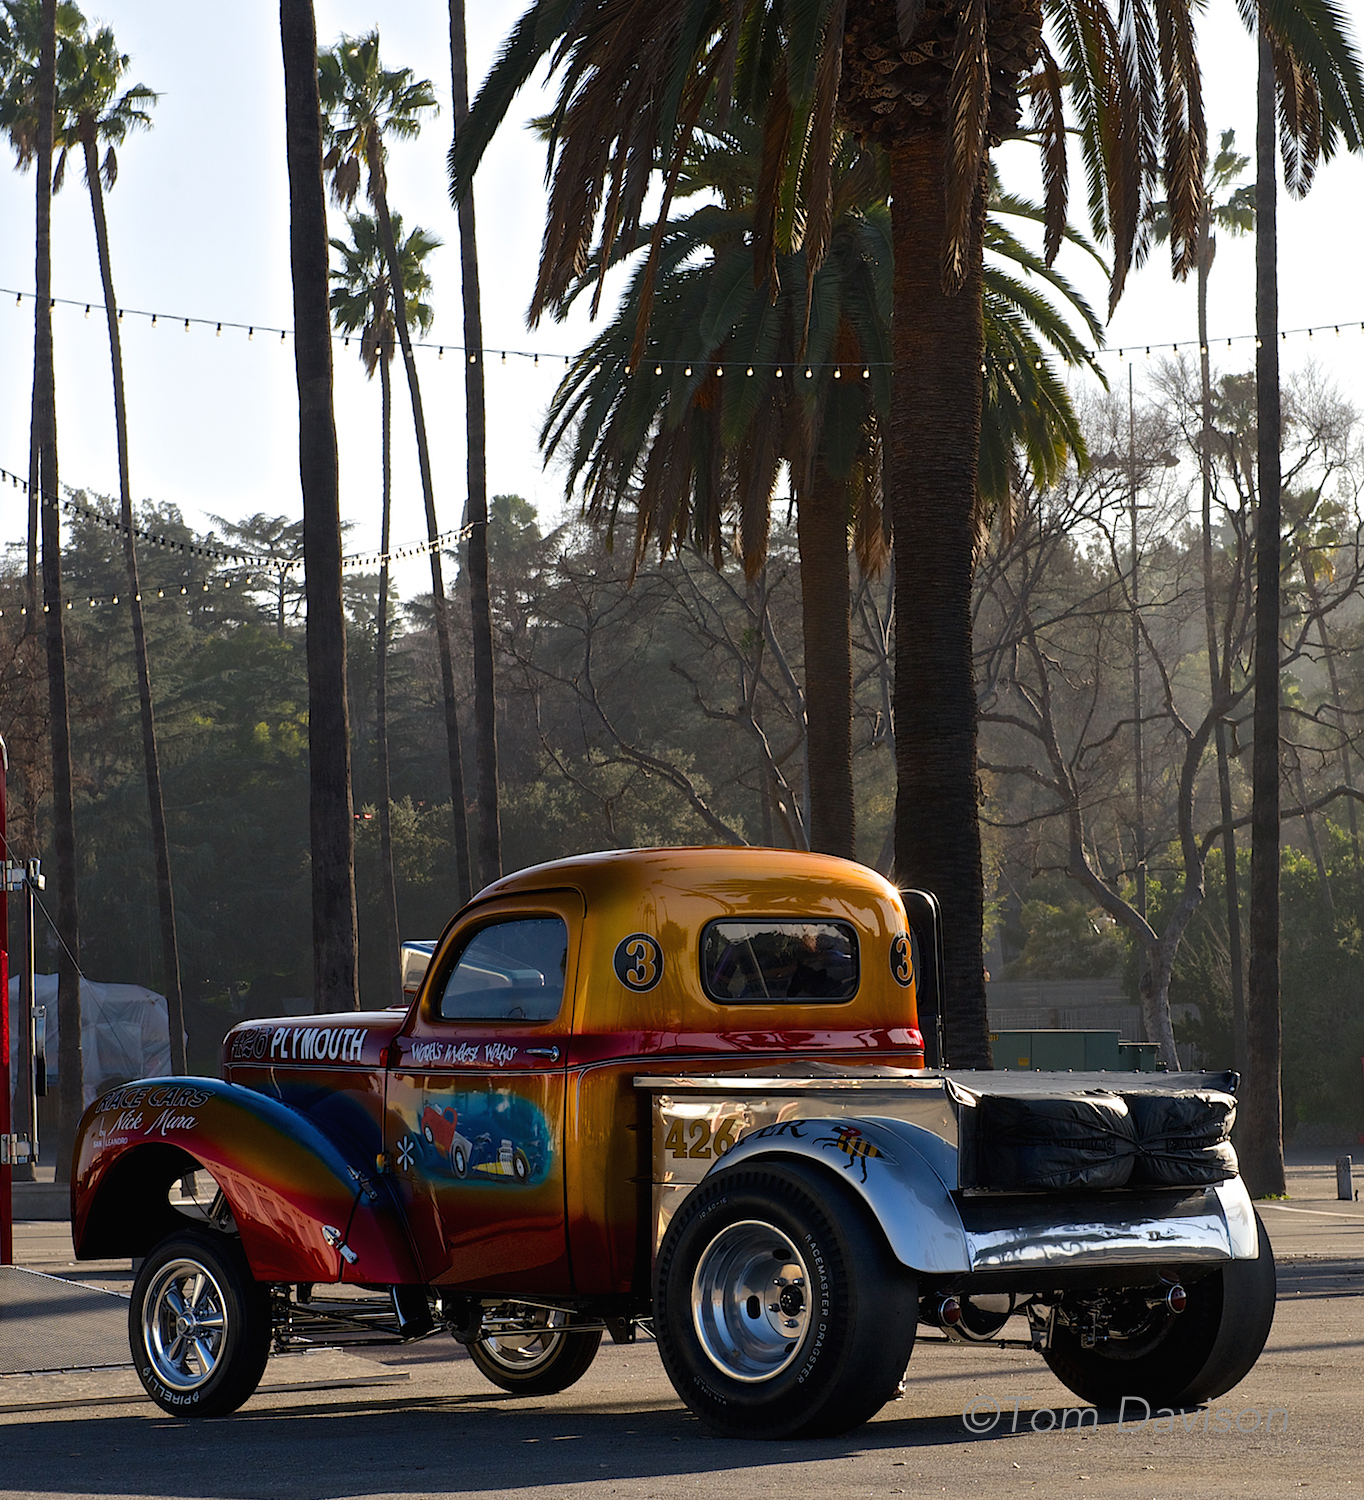 1941 Willys Pickup, awarded top award 50 years ago at this same show.